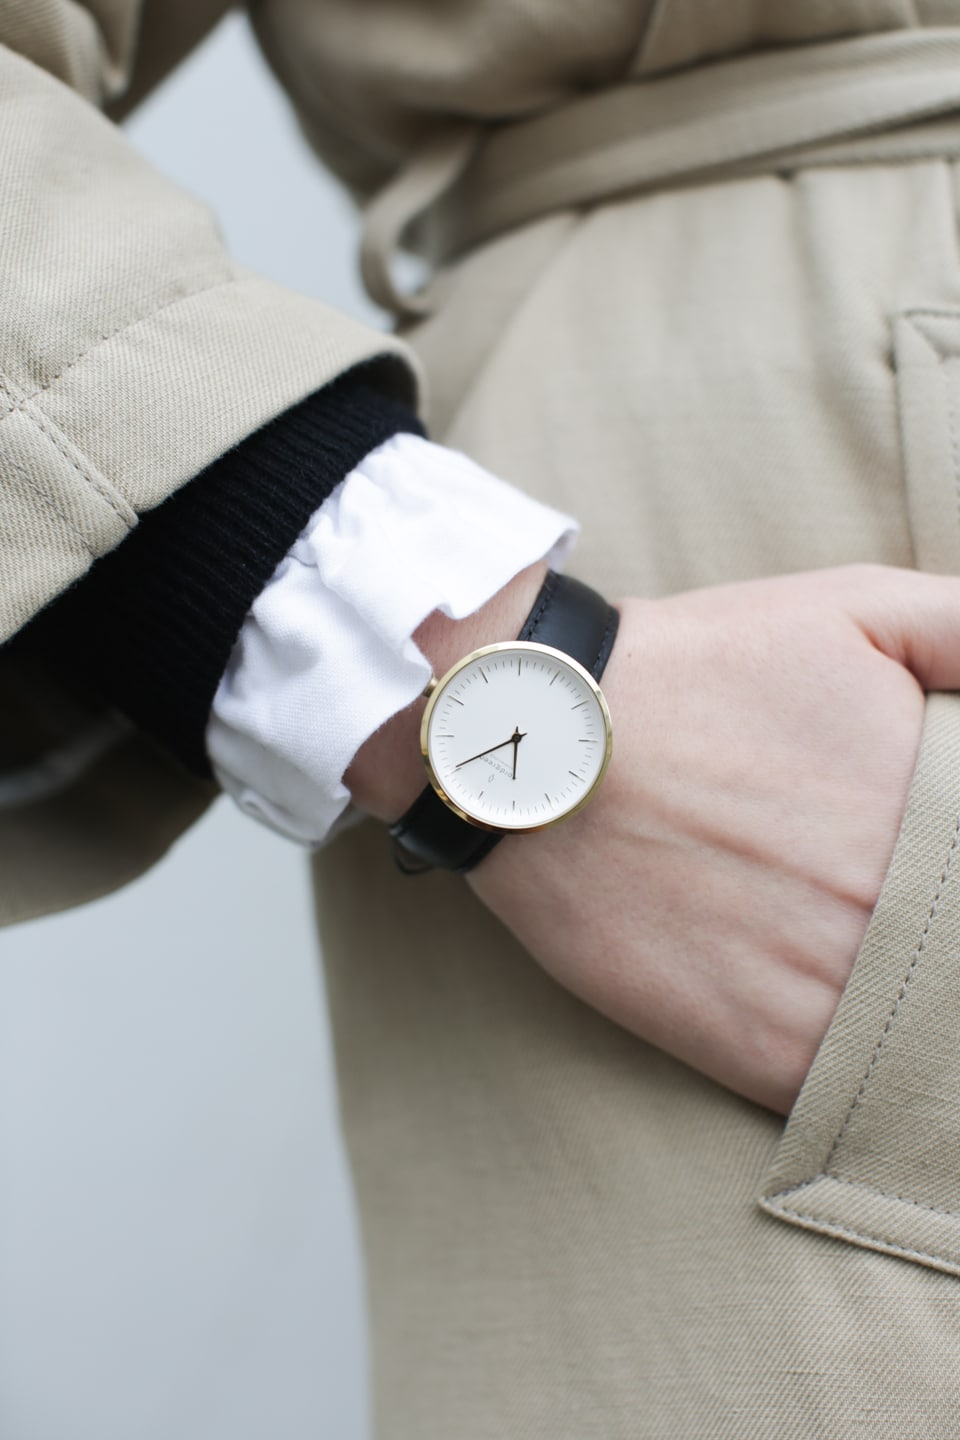 Hand in pocket with watch